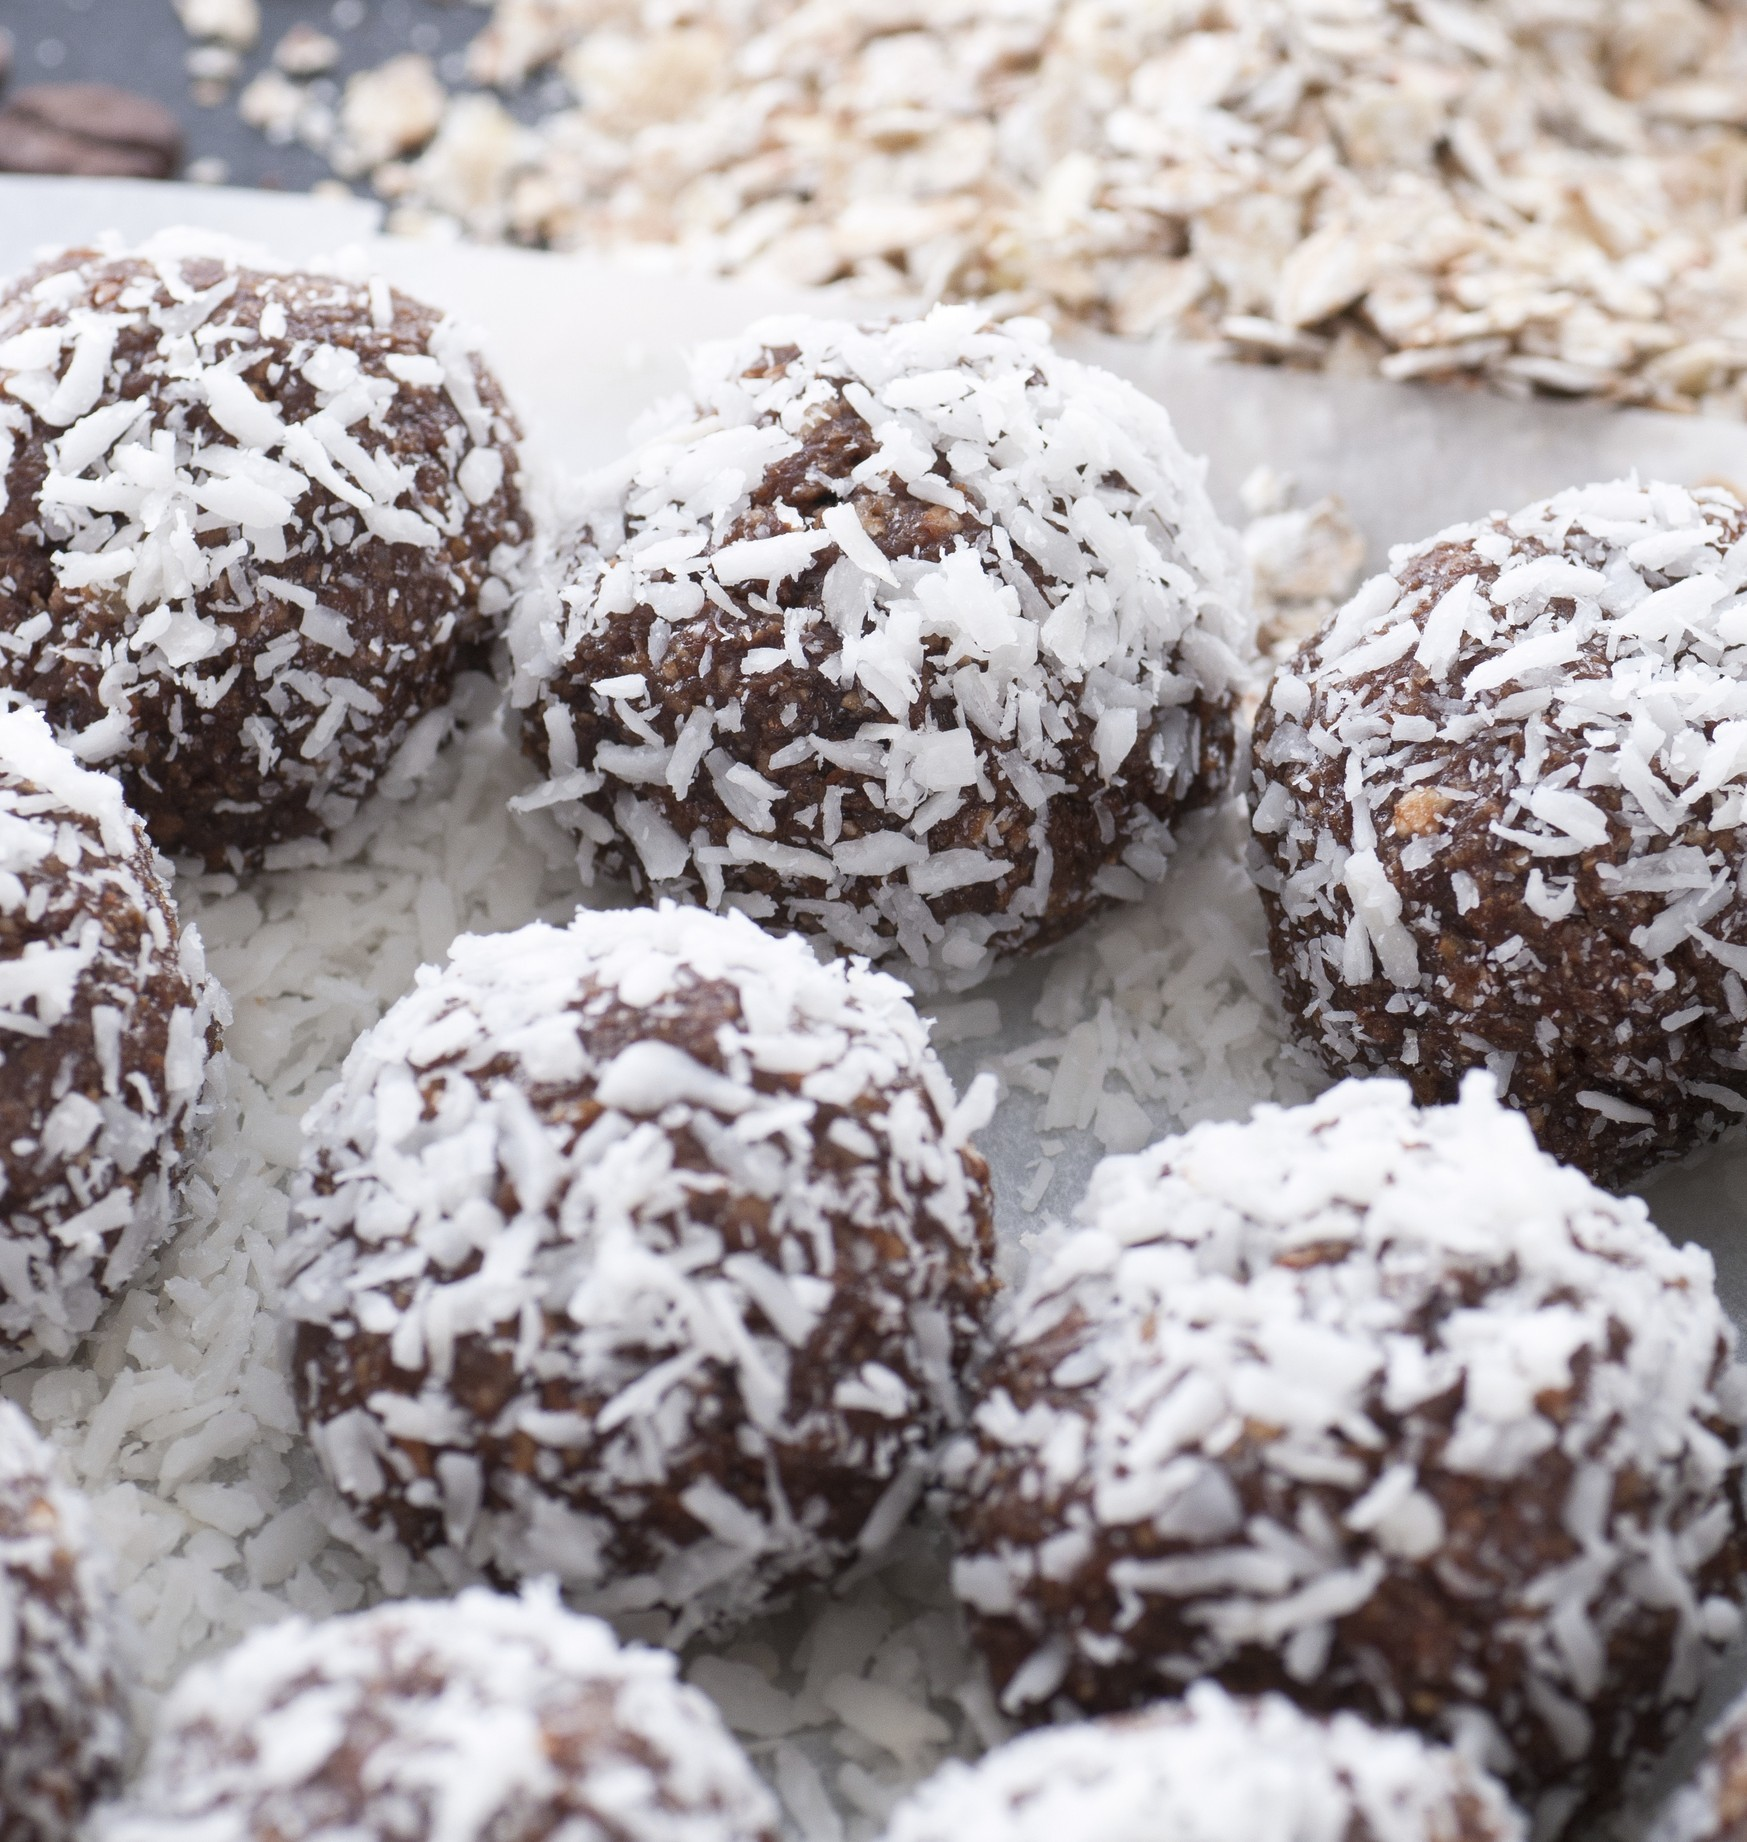 Protein balls using pumpkin puree, nut butters, and coconut flakes.